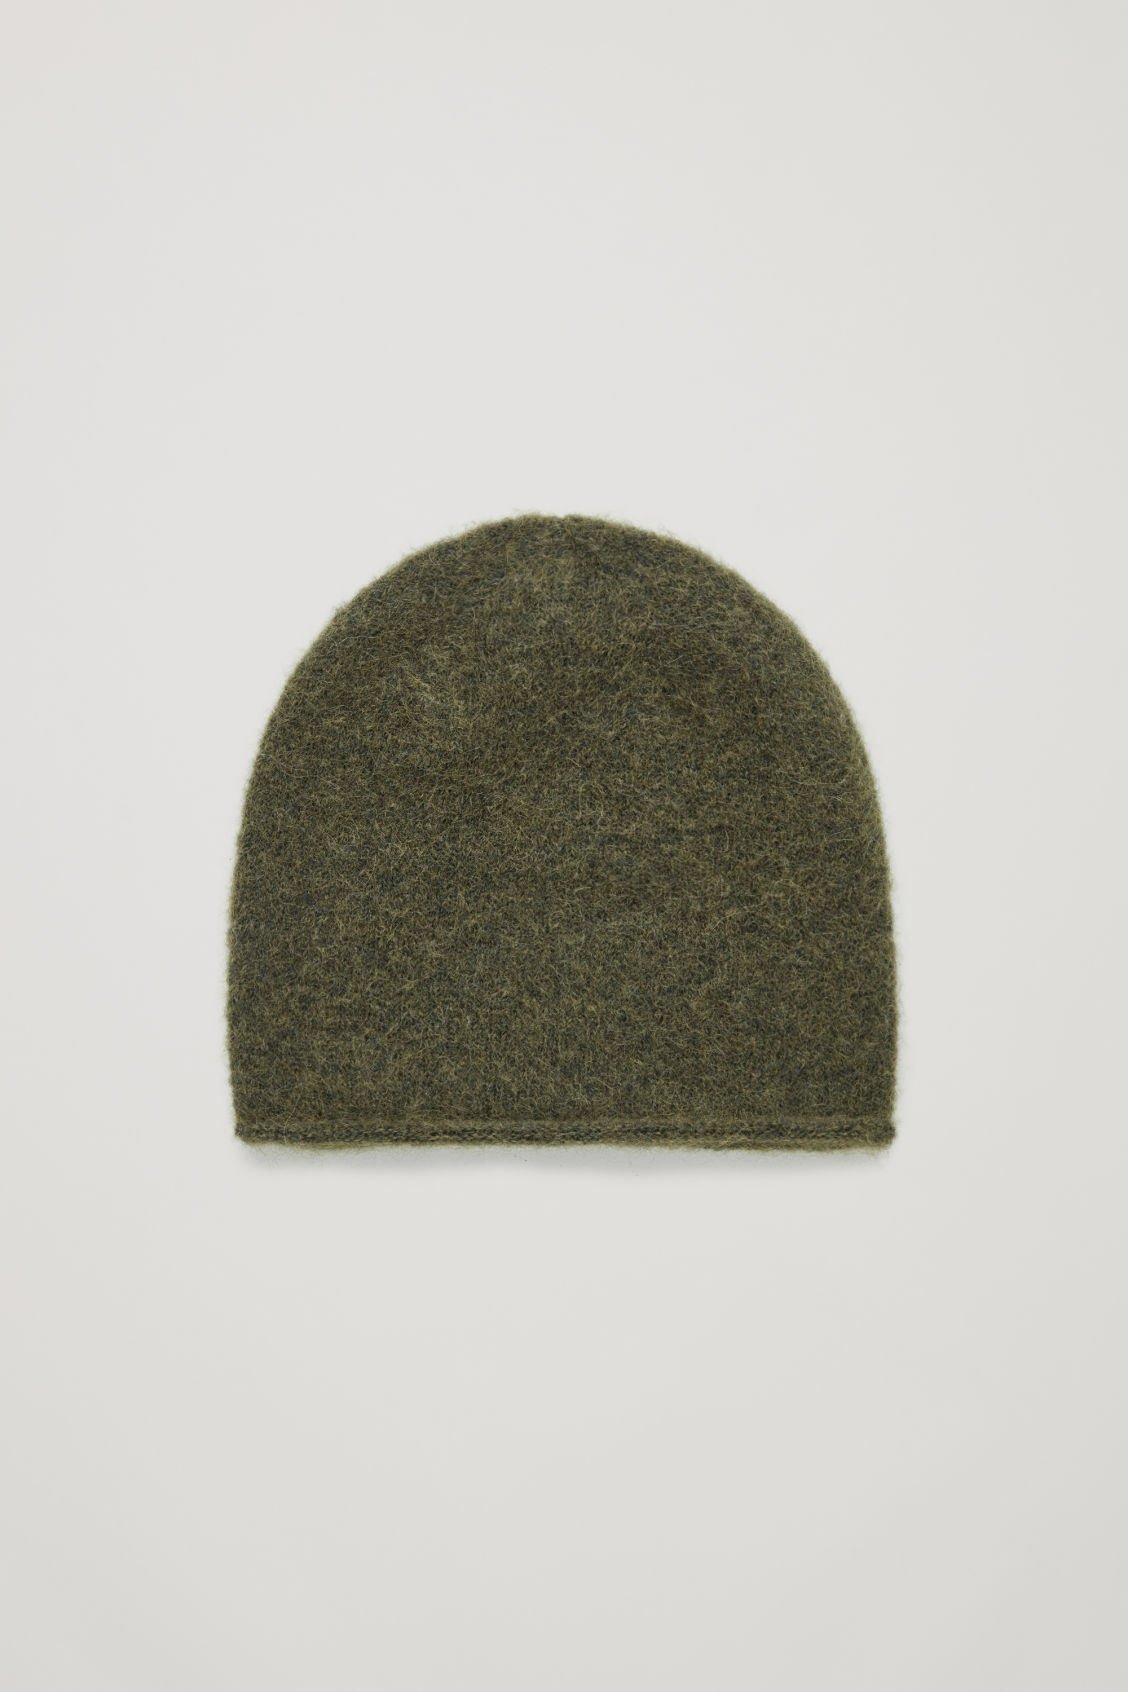 WOOL-MIX BEANIE HAT - Dark khaki - Hats Scarves and Gloves - COS 4798969abf0d